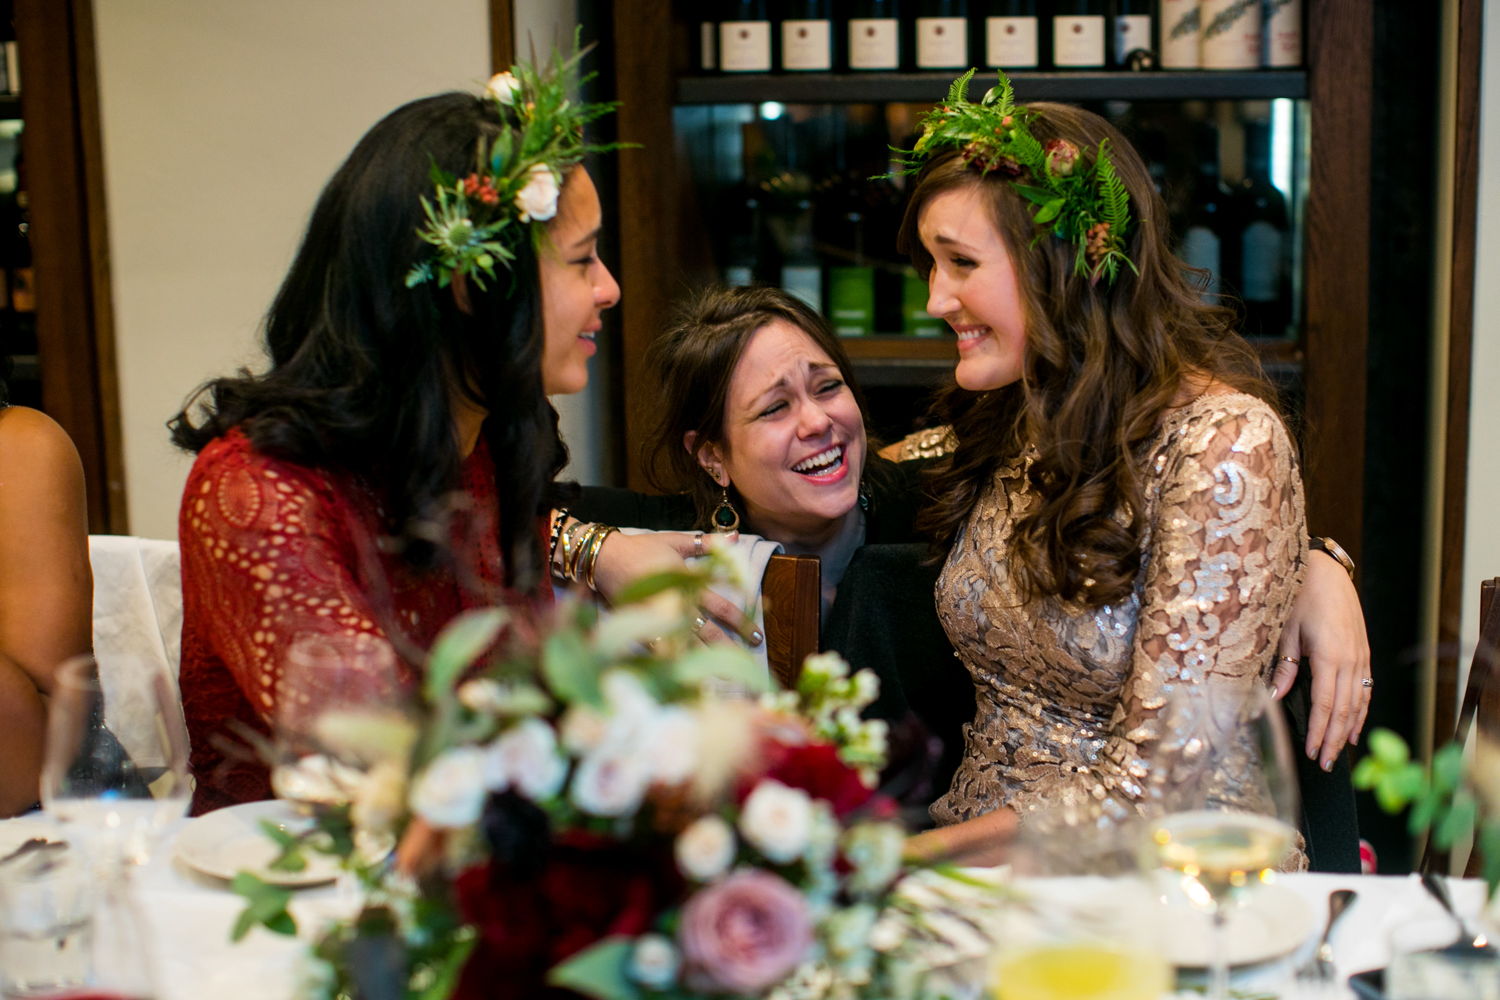 Brides laugh with a friend at their lunch wedding reception at Maialino in New York City.